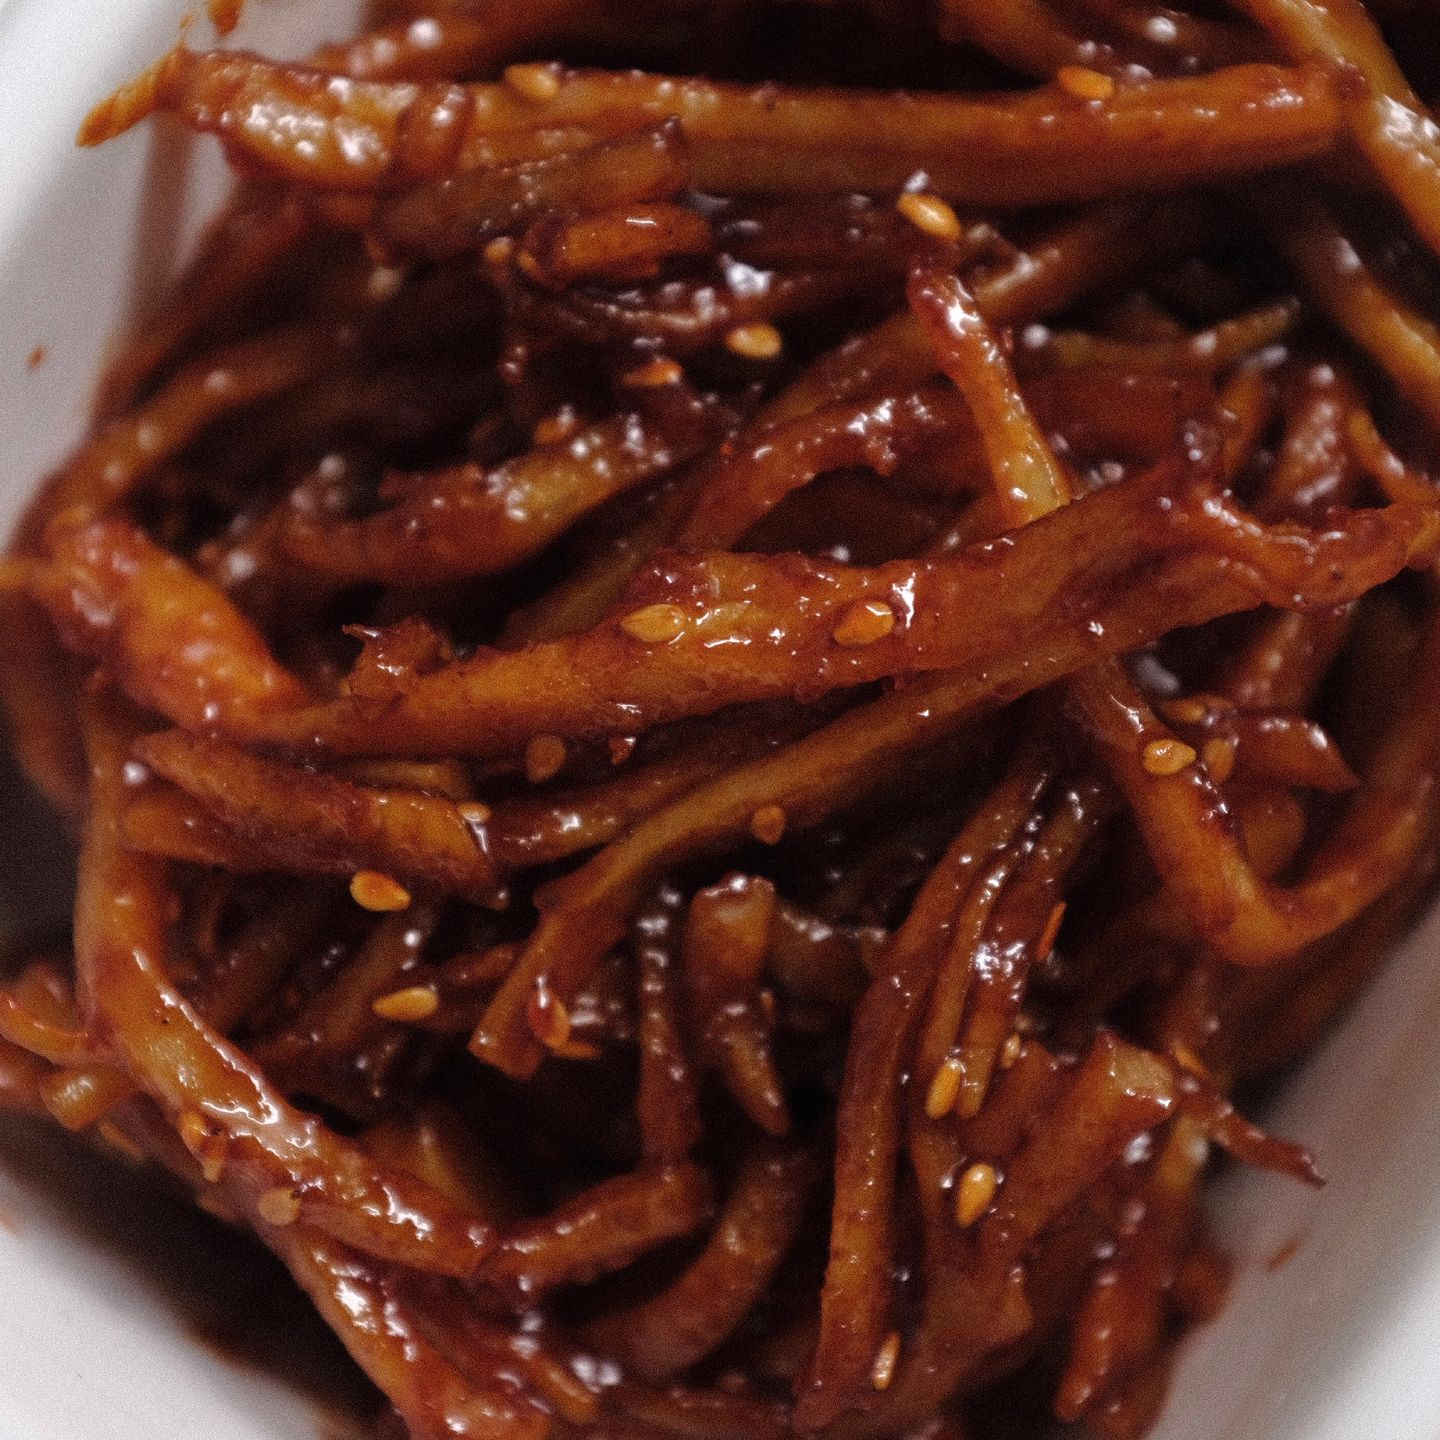 Stir-fried dried squid